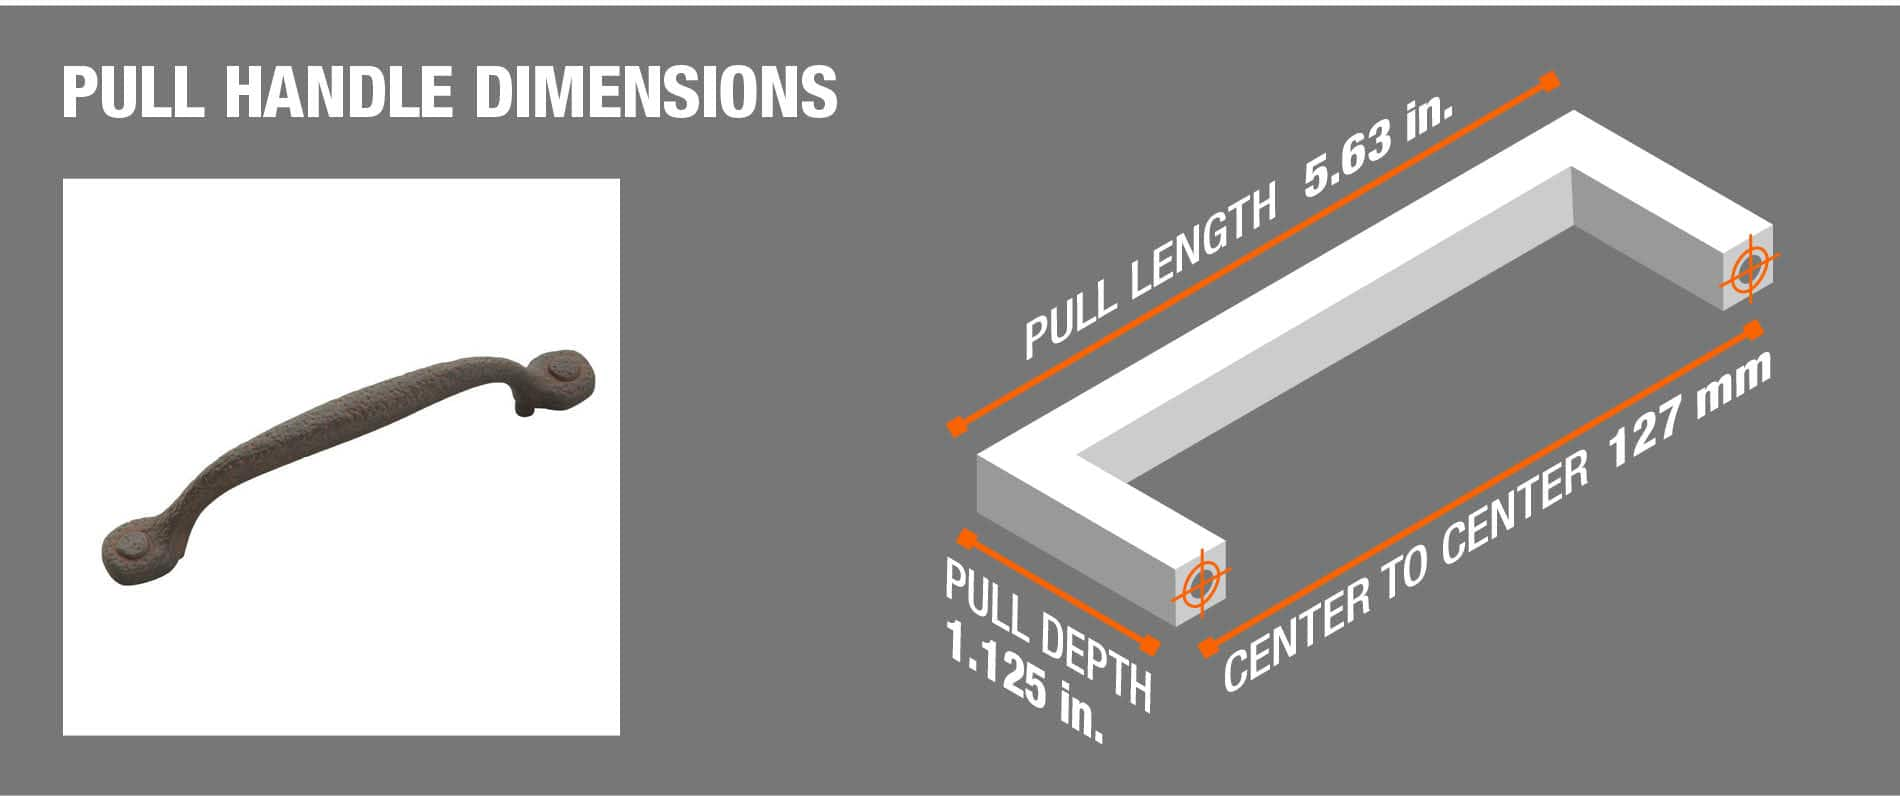 pull handle dimensions